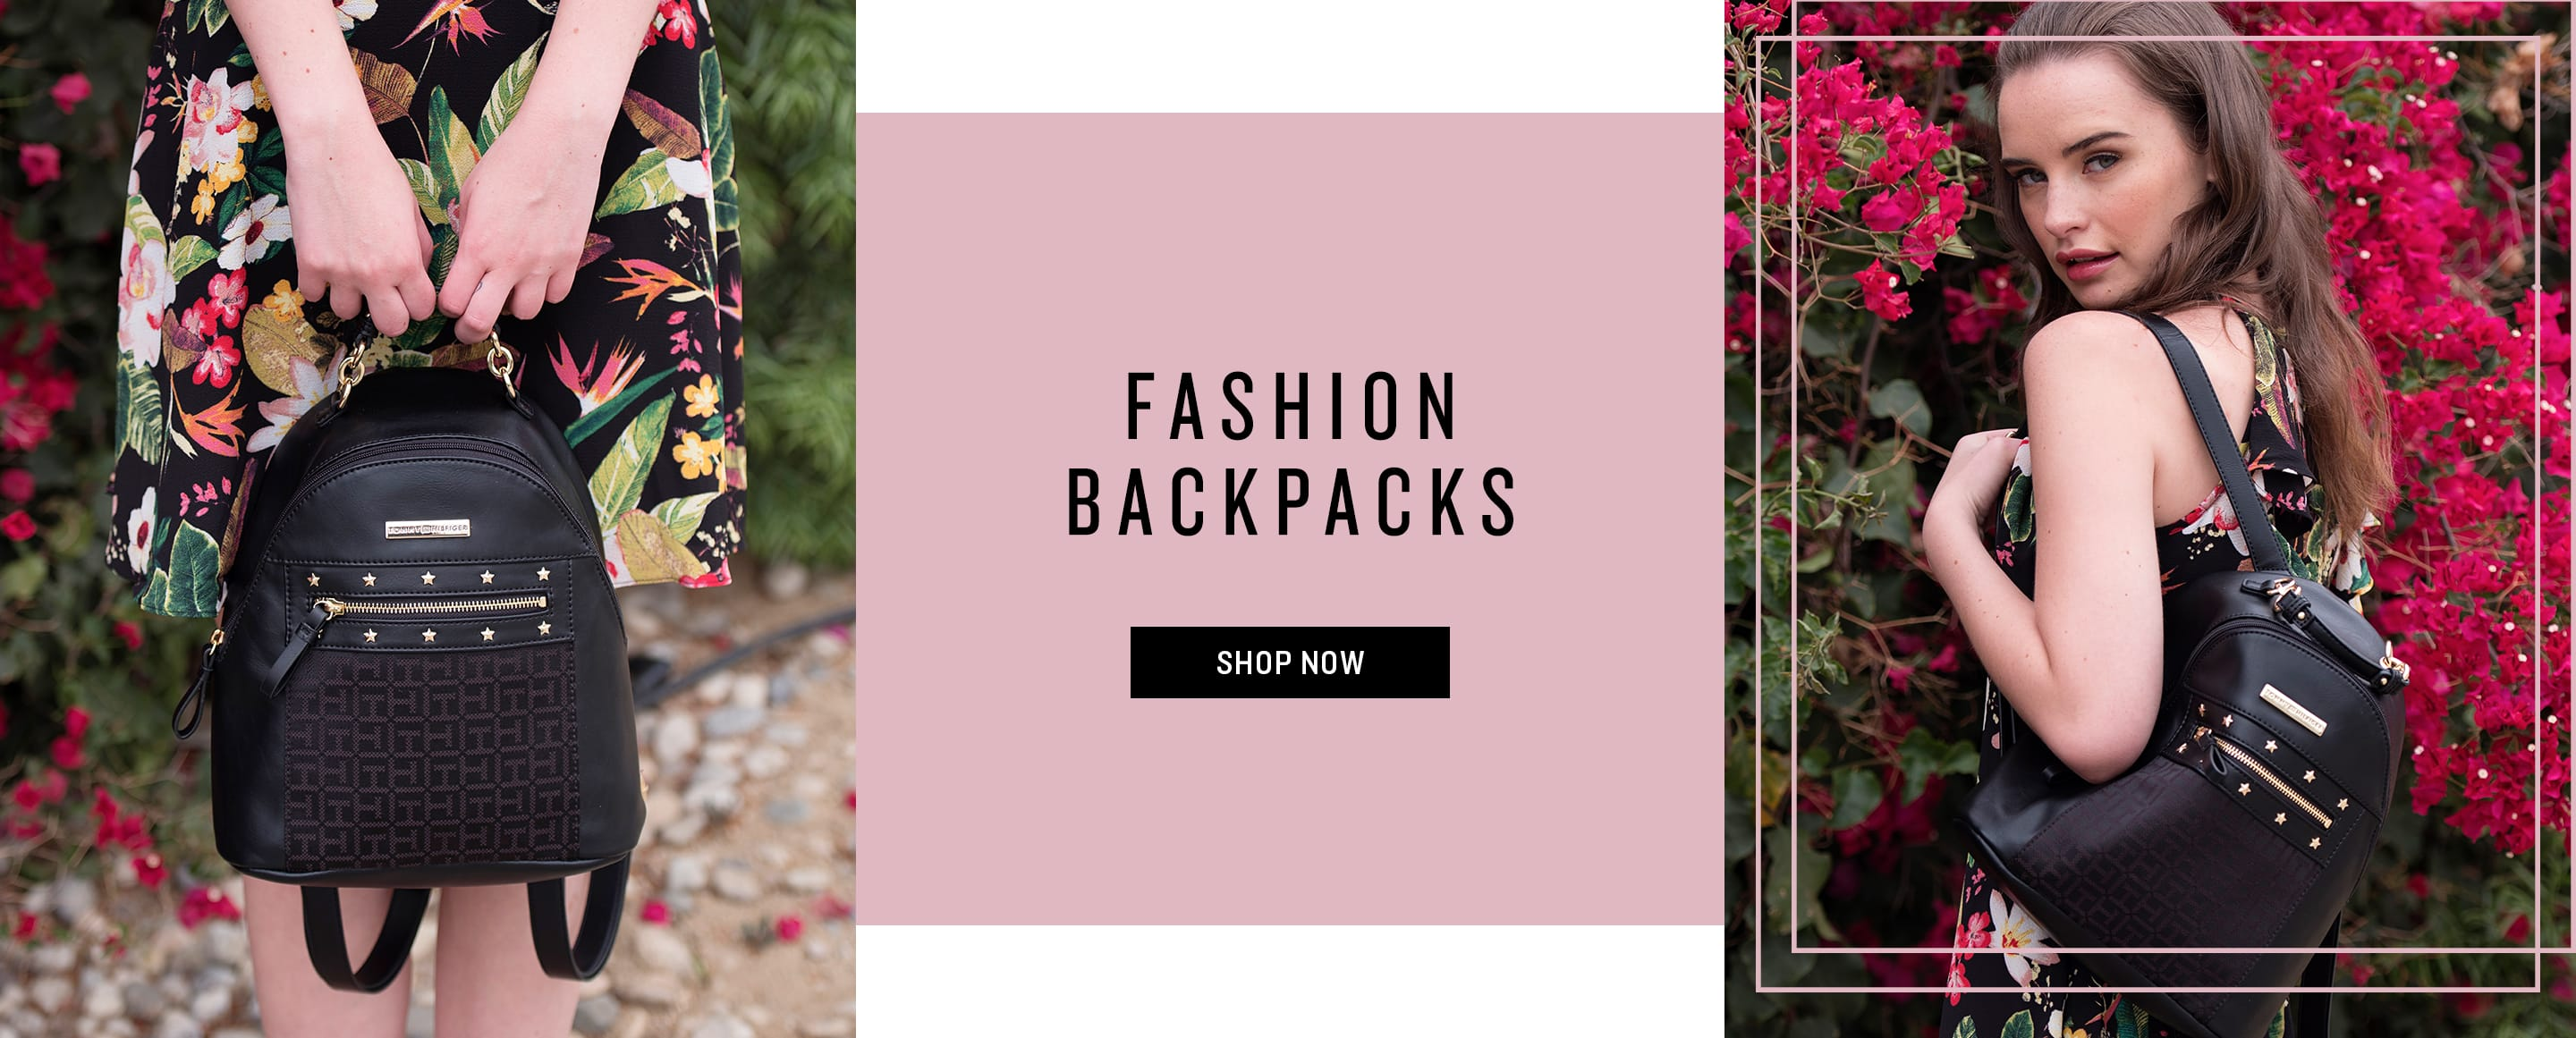 Shop Fashion backpacks